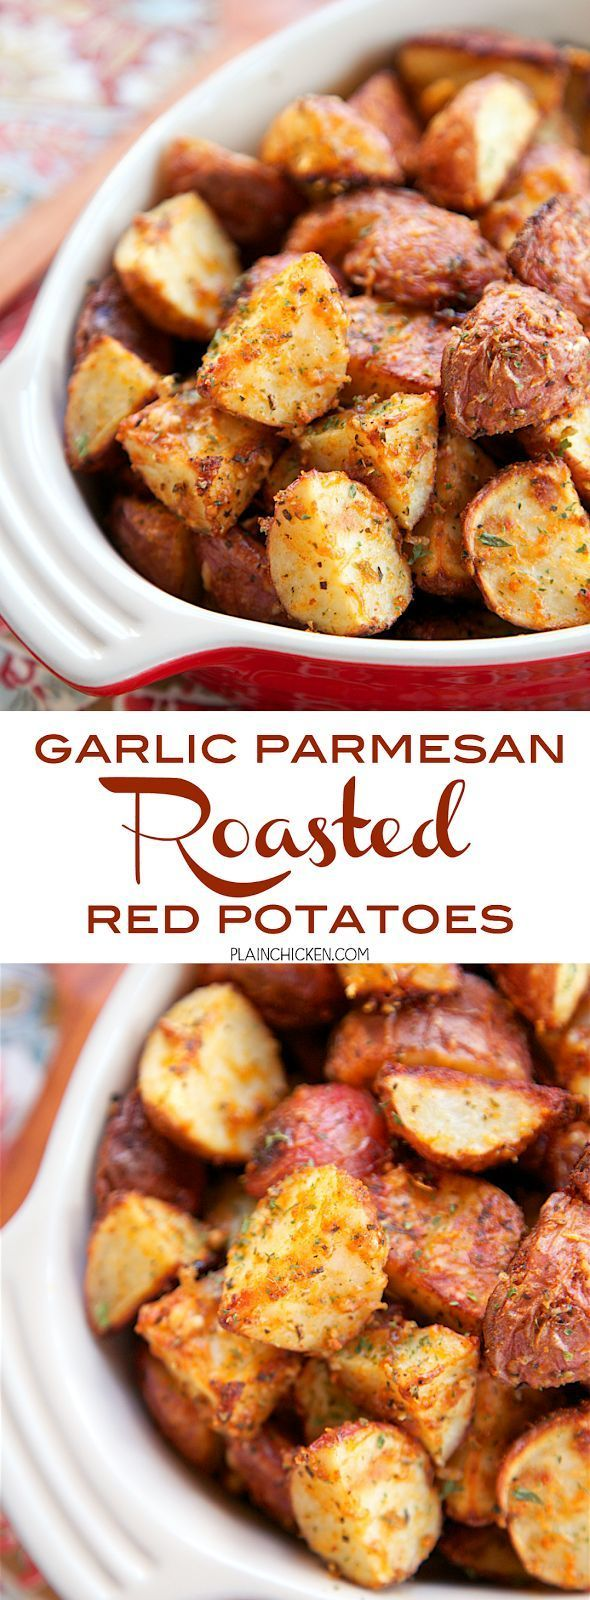 Parmesan Roasted Red Potatoes - red potatoes tossed in garlic, onion, paprika, Italian seasoning and parmesan cheese - SO delicious! A super quick and easy side dish. Ready for the oven in minutes! Great with burgers, chicken, steak and pork. The whole family loves these yummy potatoes!